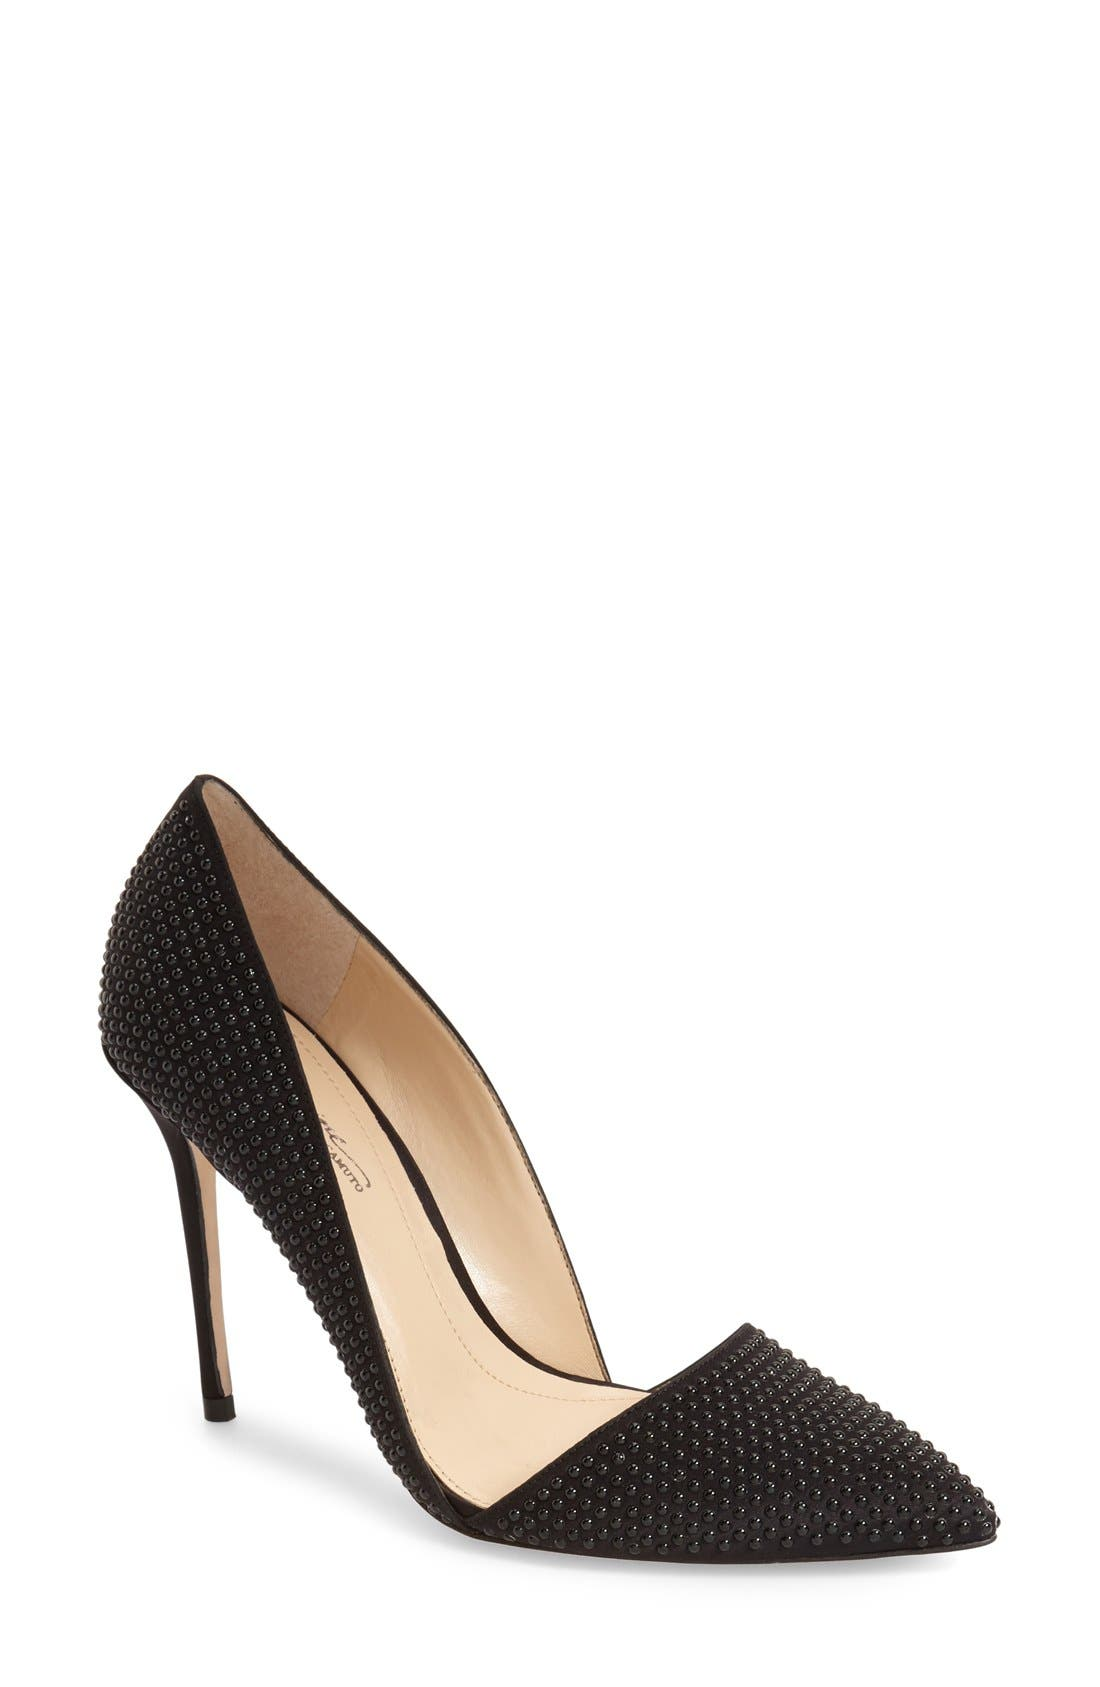 Imagine Vince Camuto 'Ossie' d'Orsay Pump,                             Main thumbnail 1, color,                             001